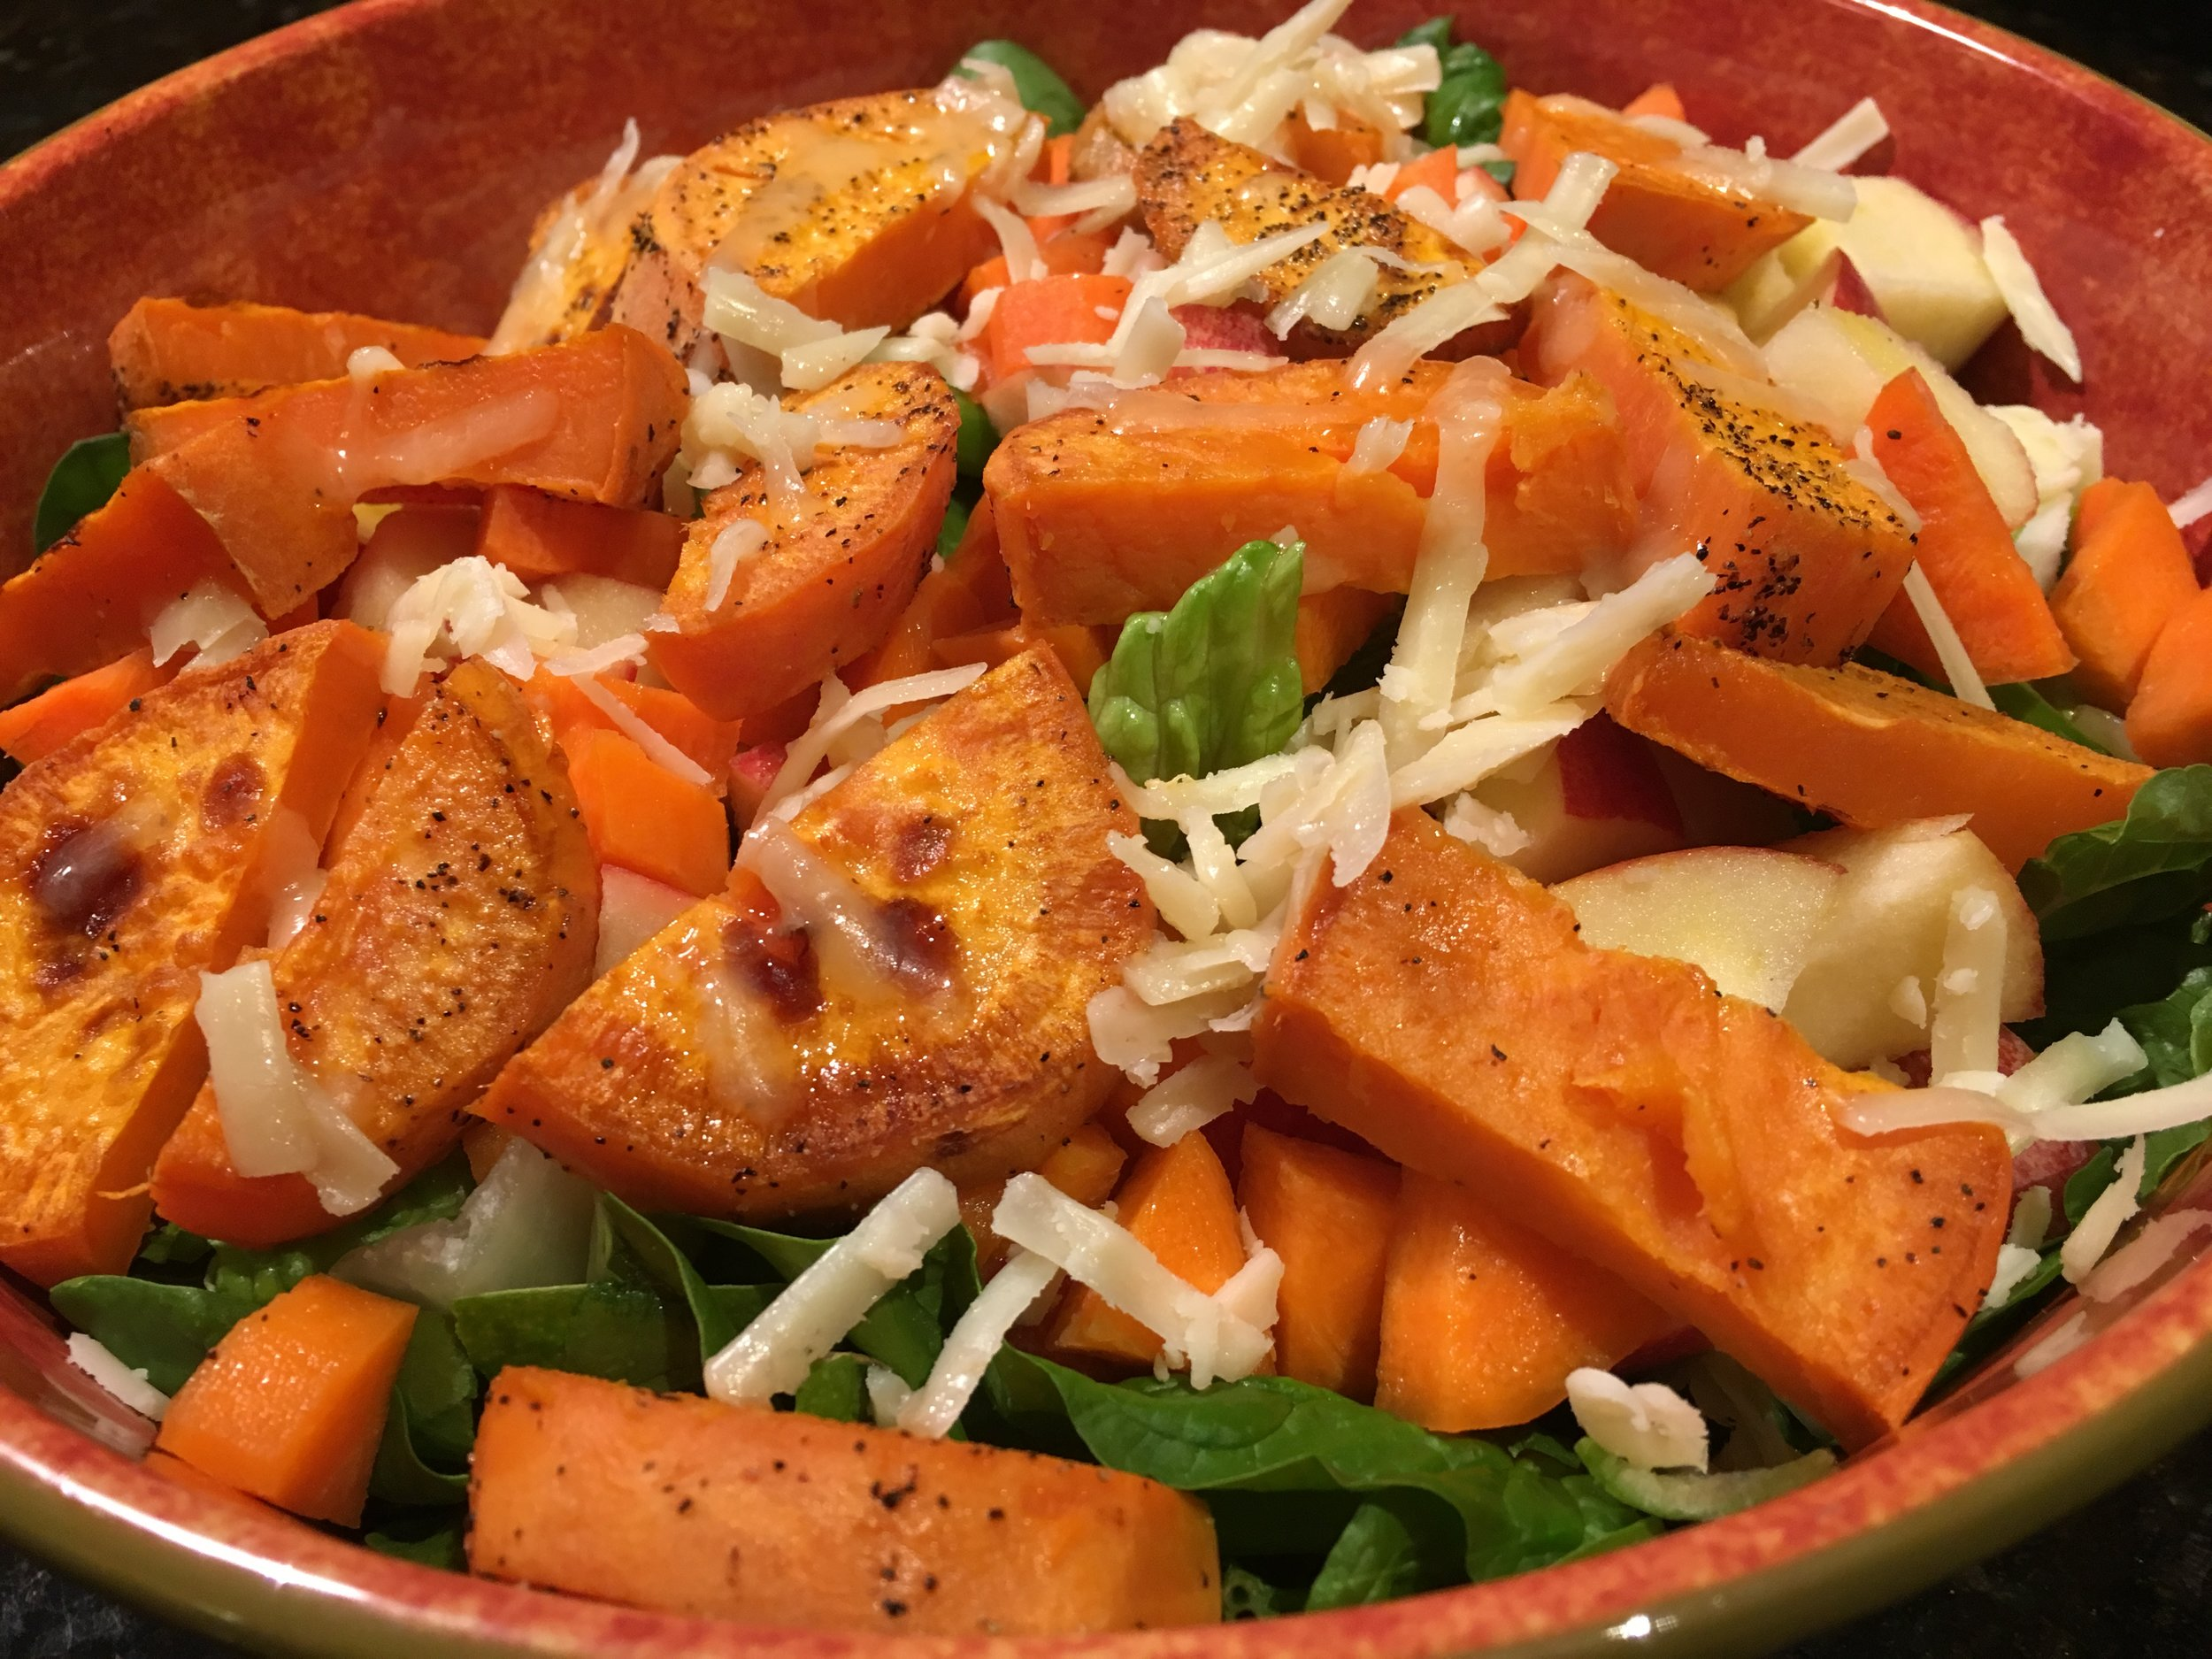 Autumn Harvest Salad.JPG